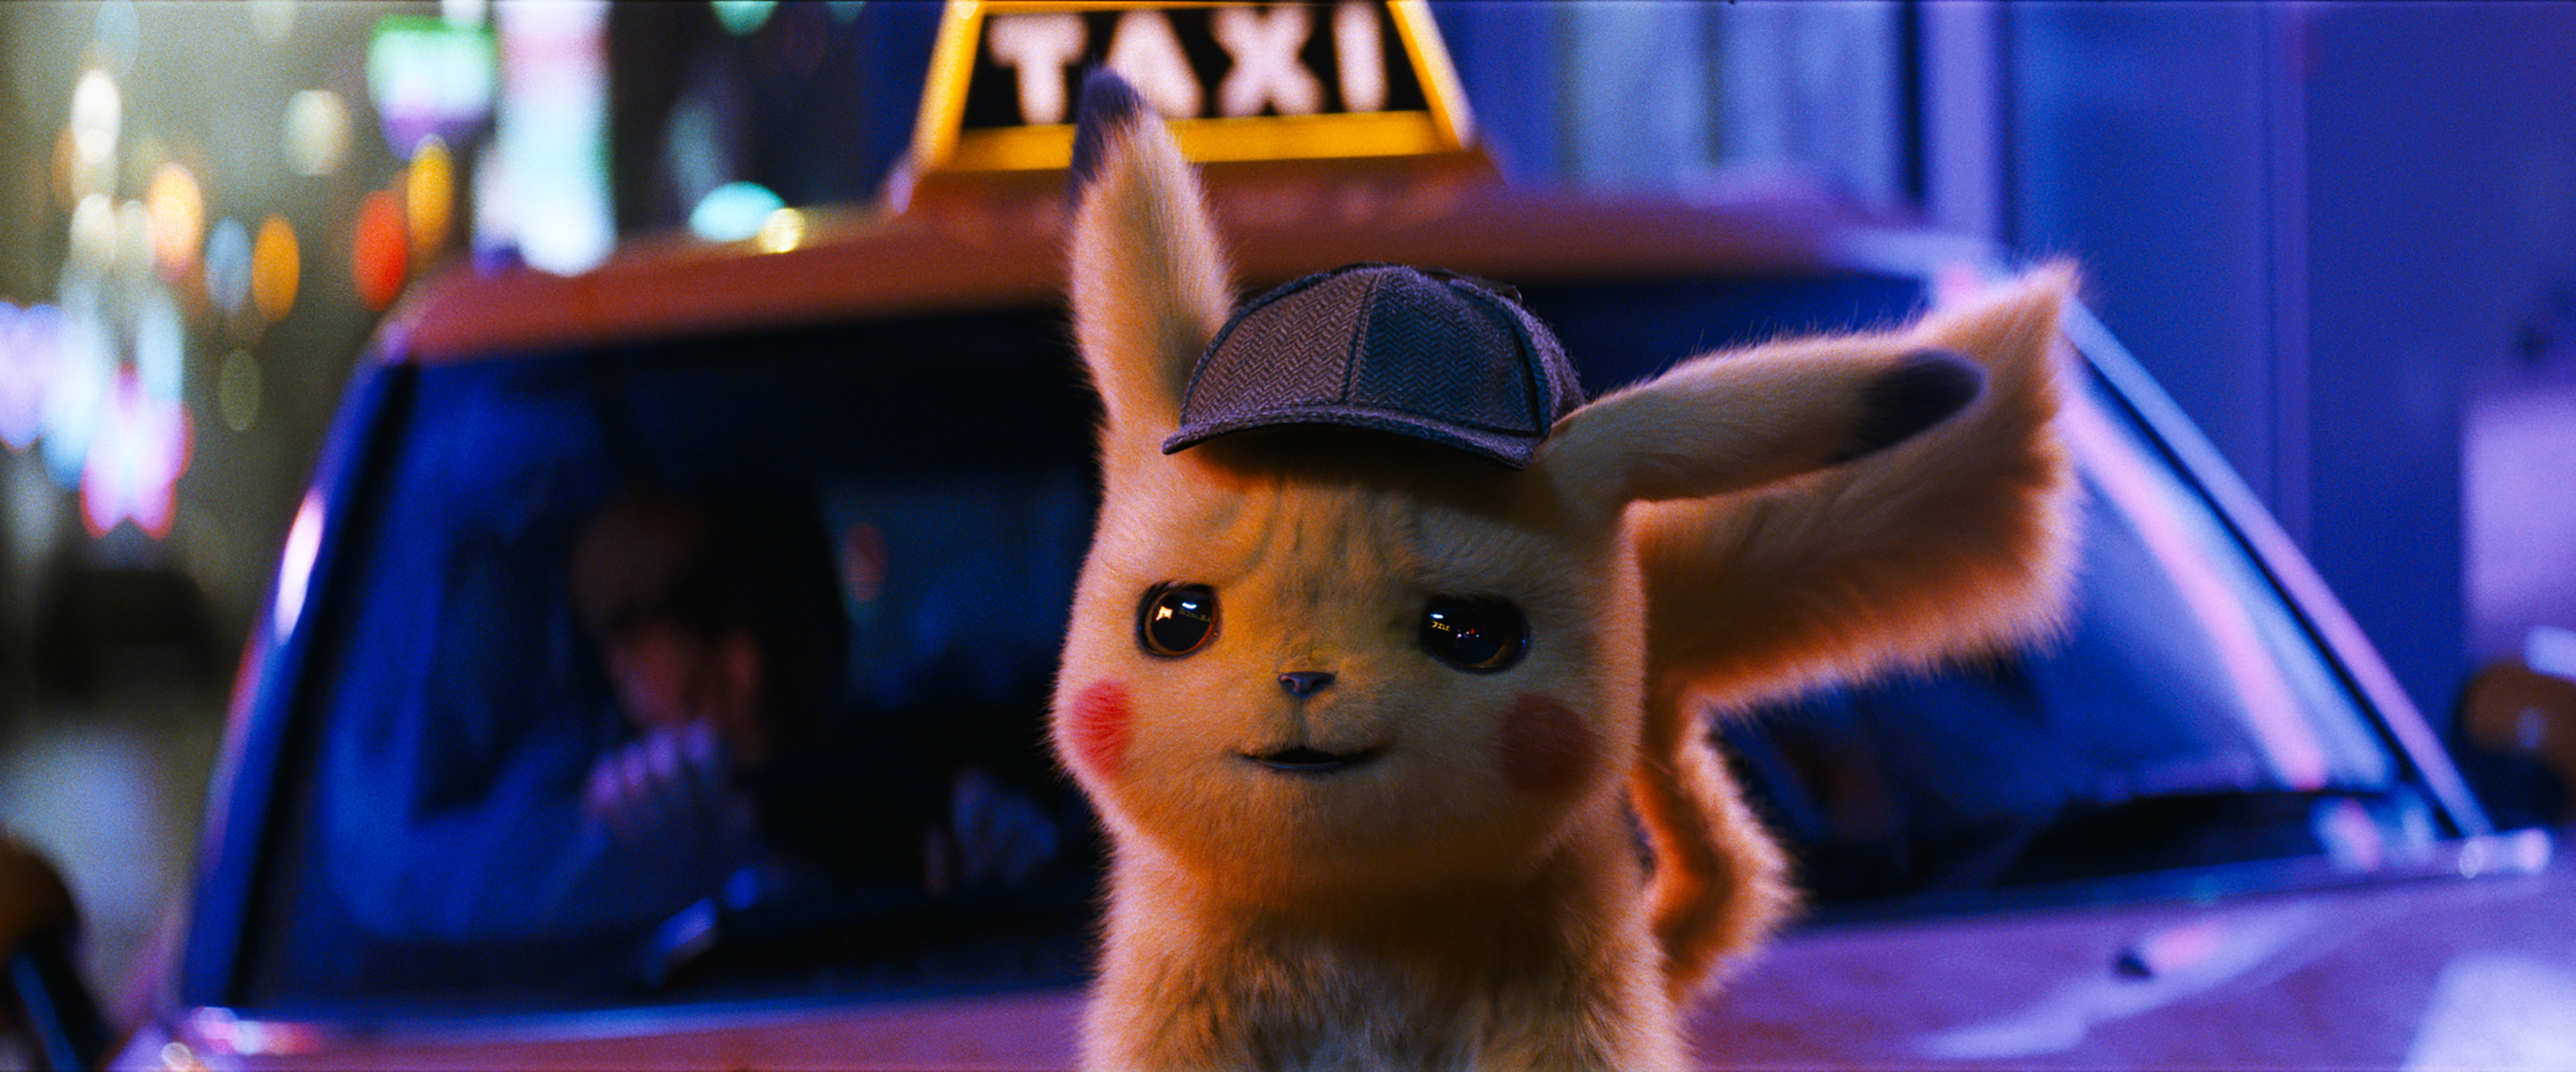 When Will Detective Pikachu Be Available To Buy On Amazon